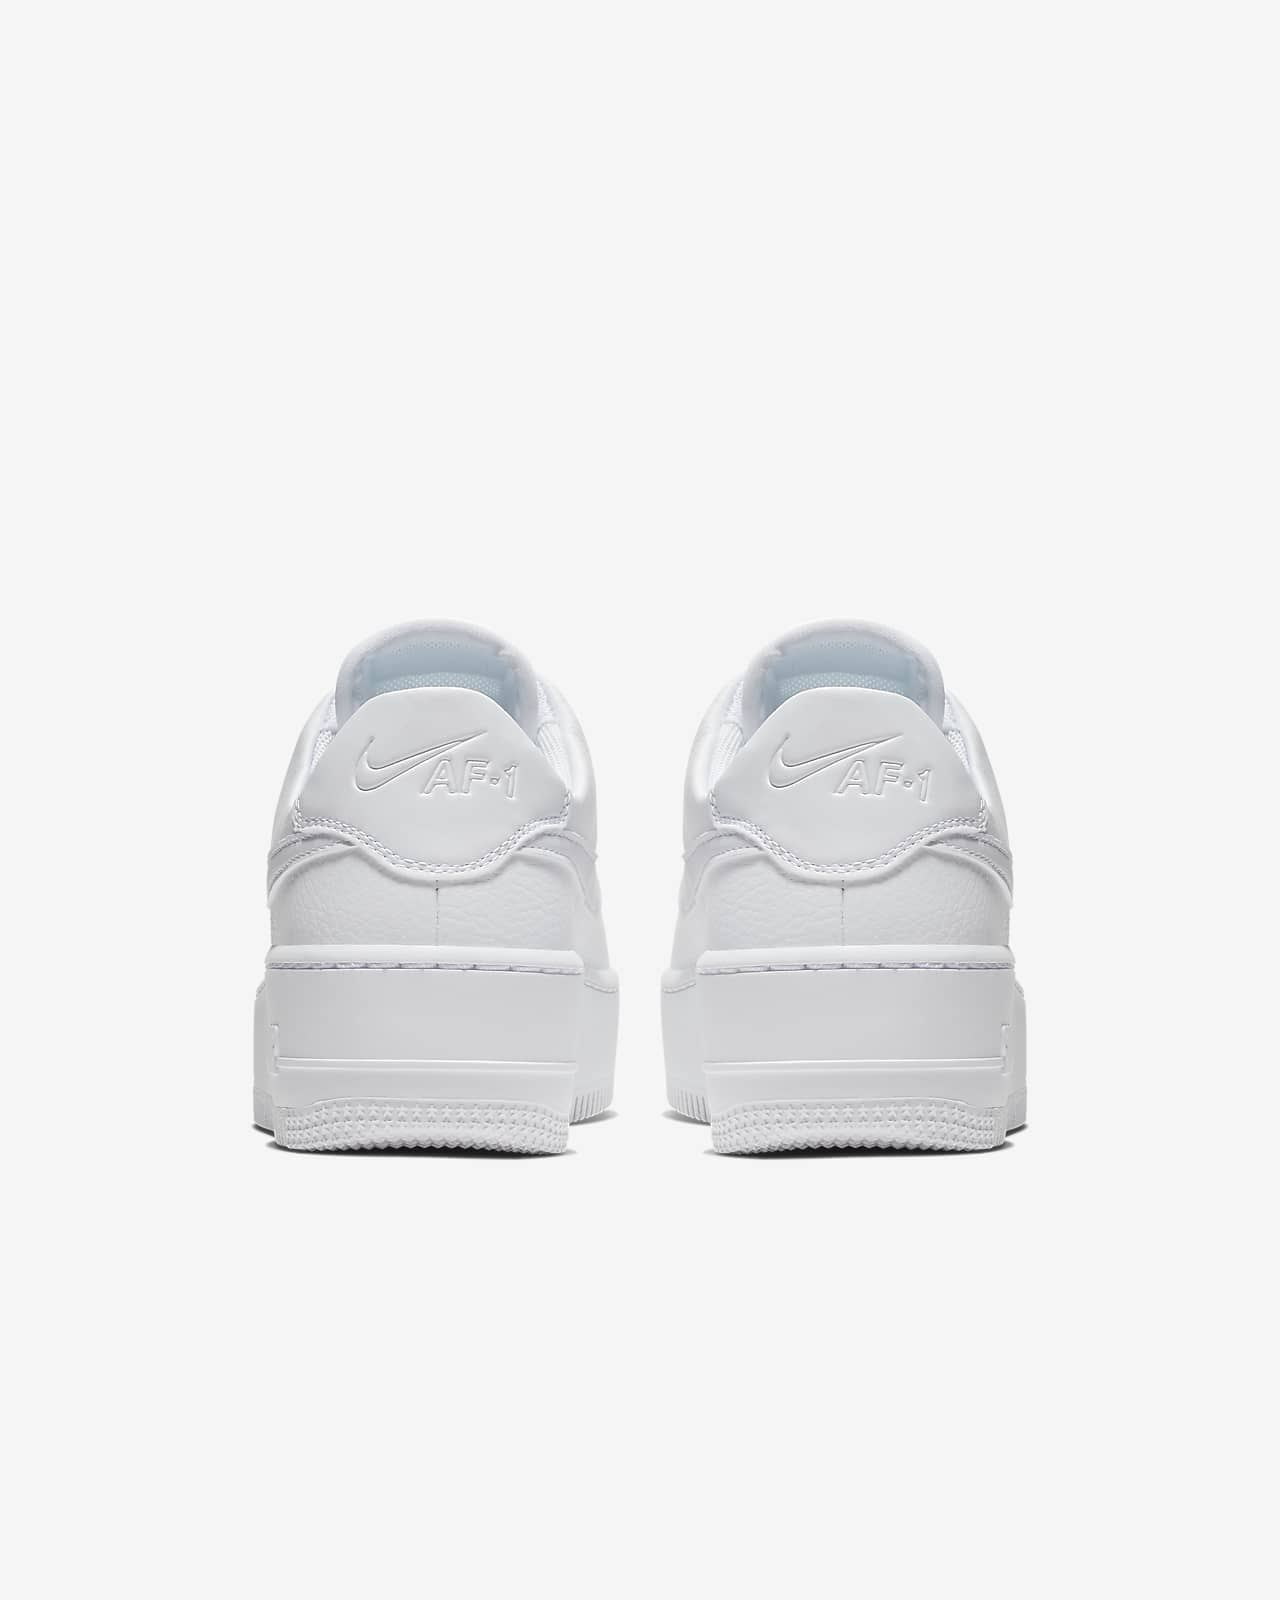 Nike Air Force 1 Sage Low Women's Shoes